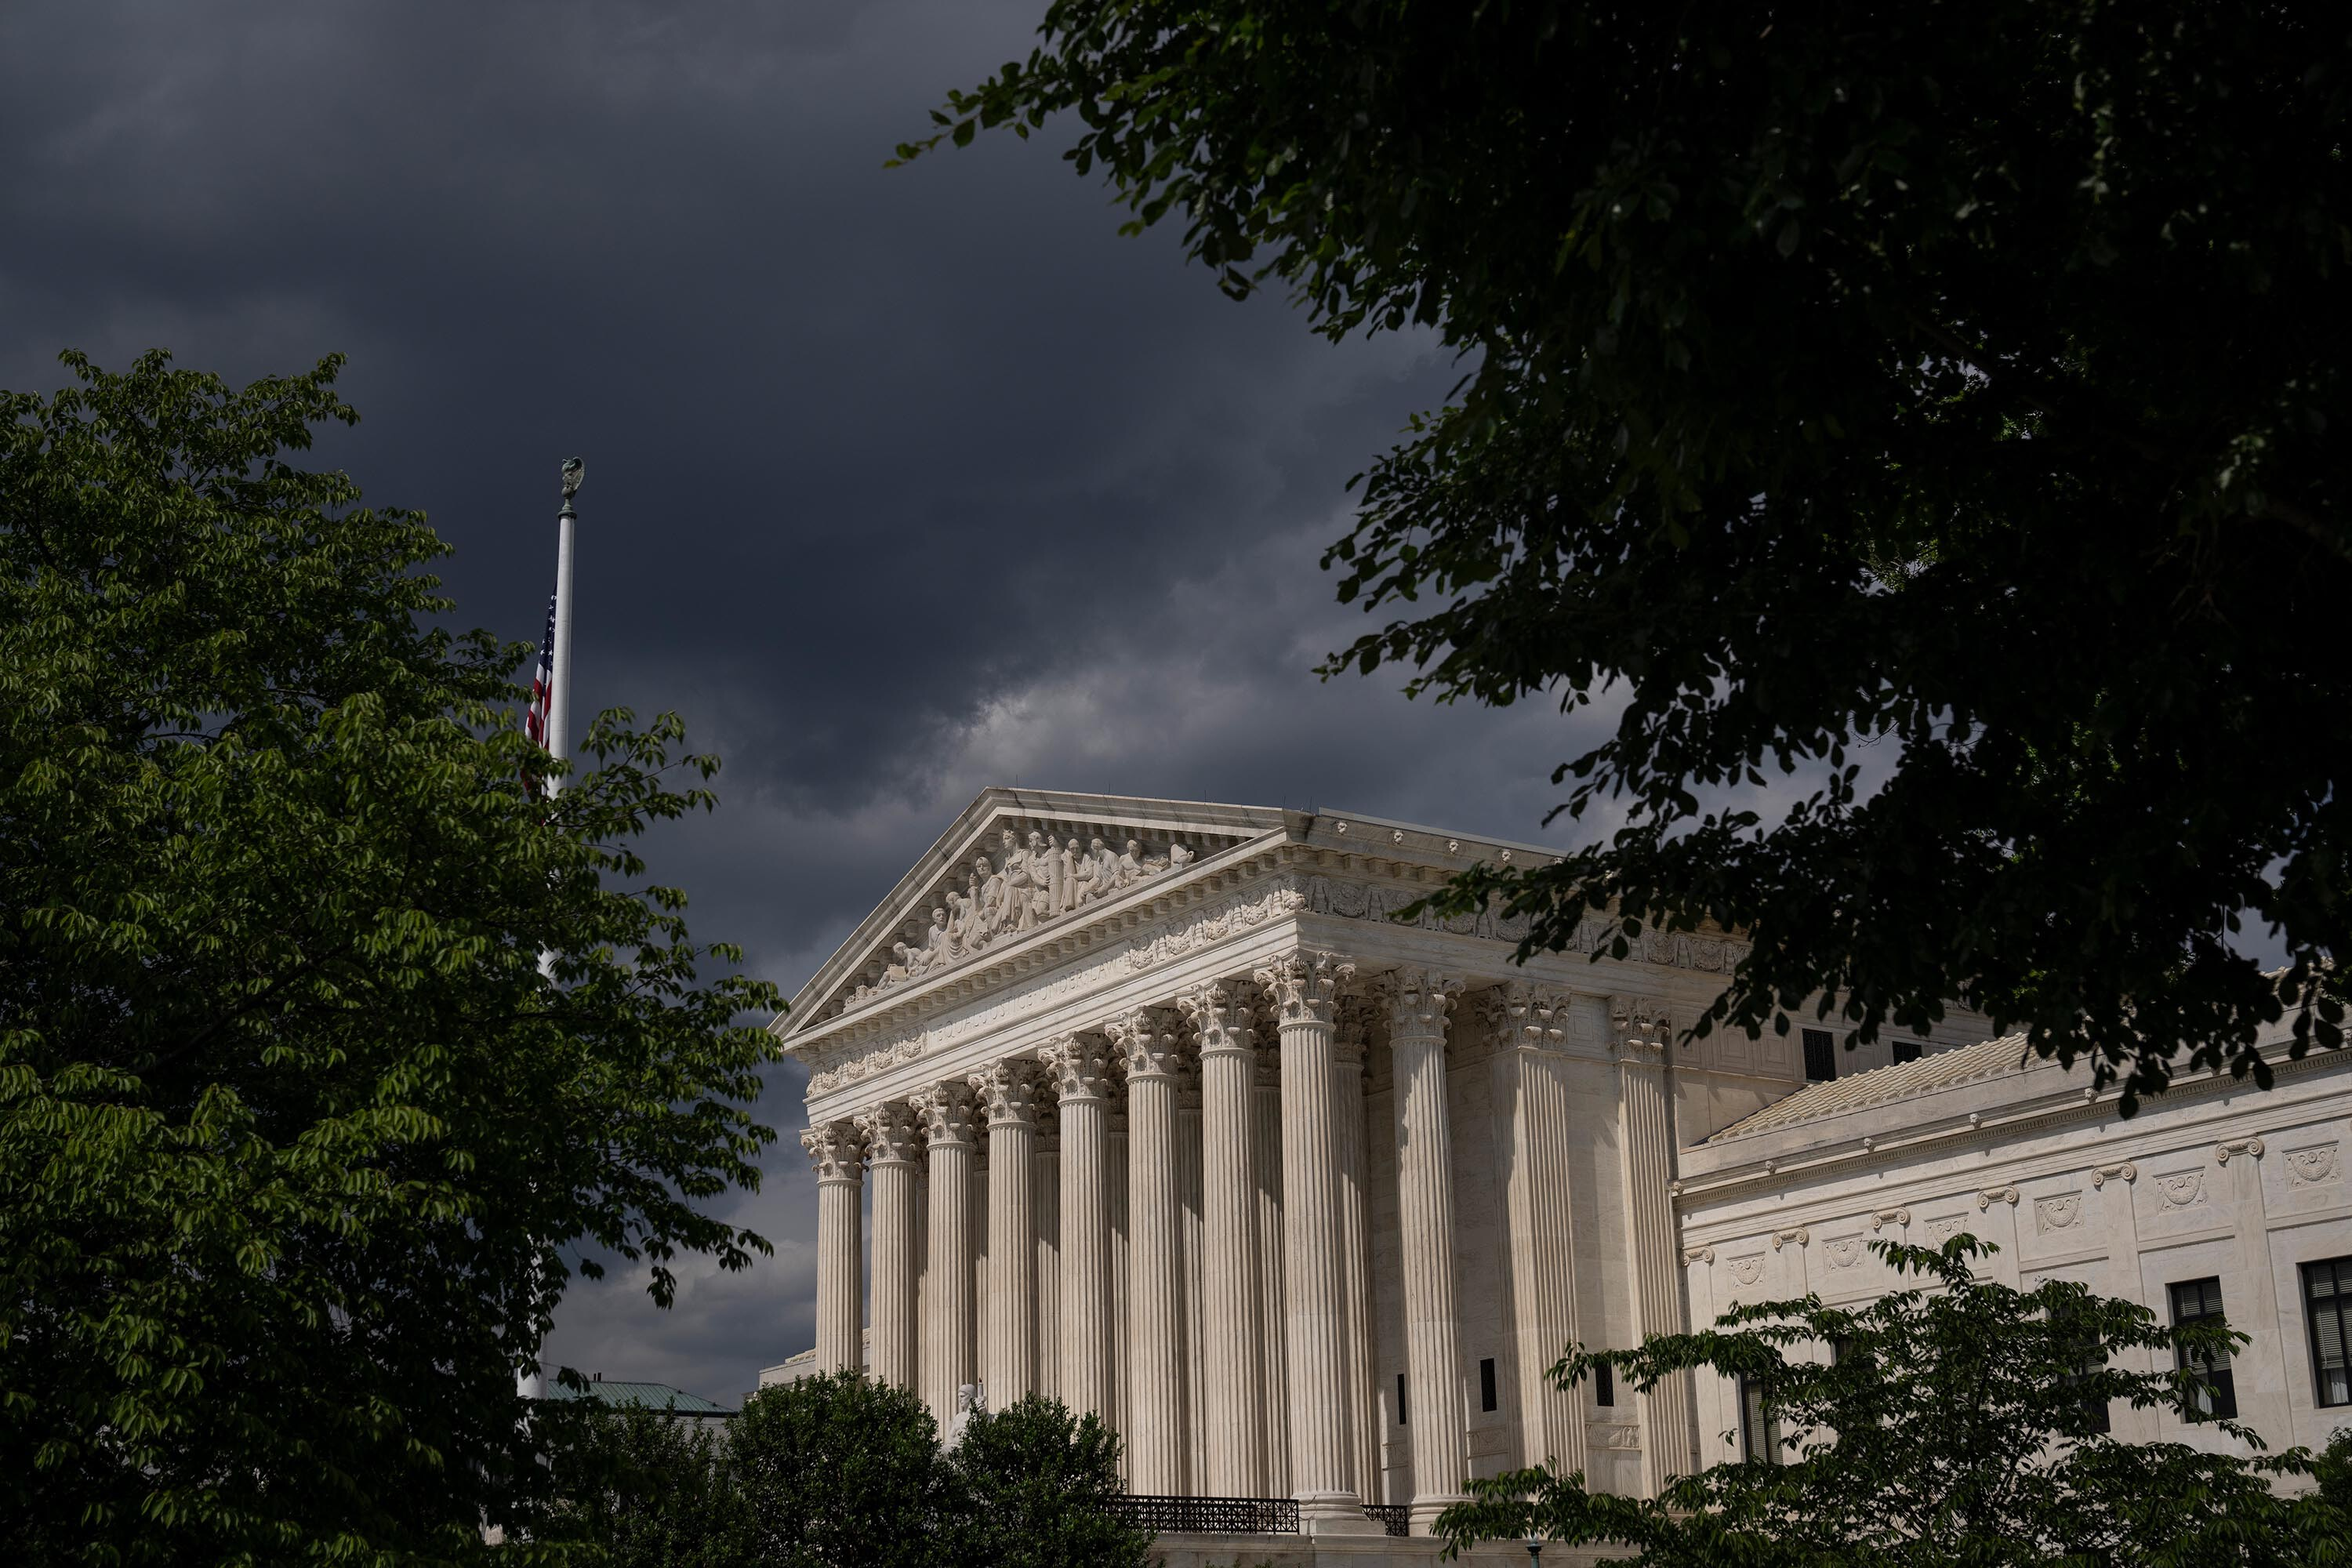 Supreme Court to hear restrictive Mississippi abortion law on December 1